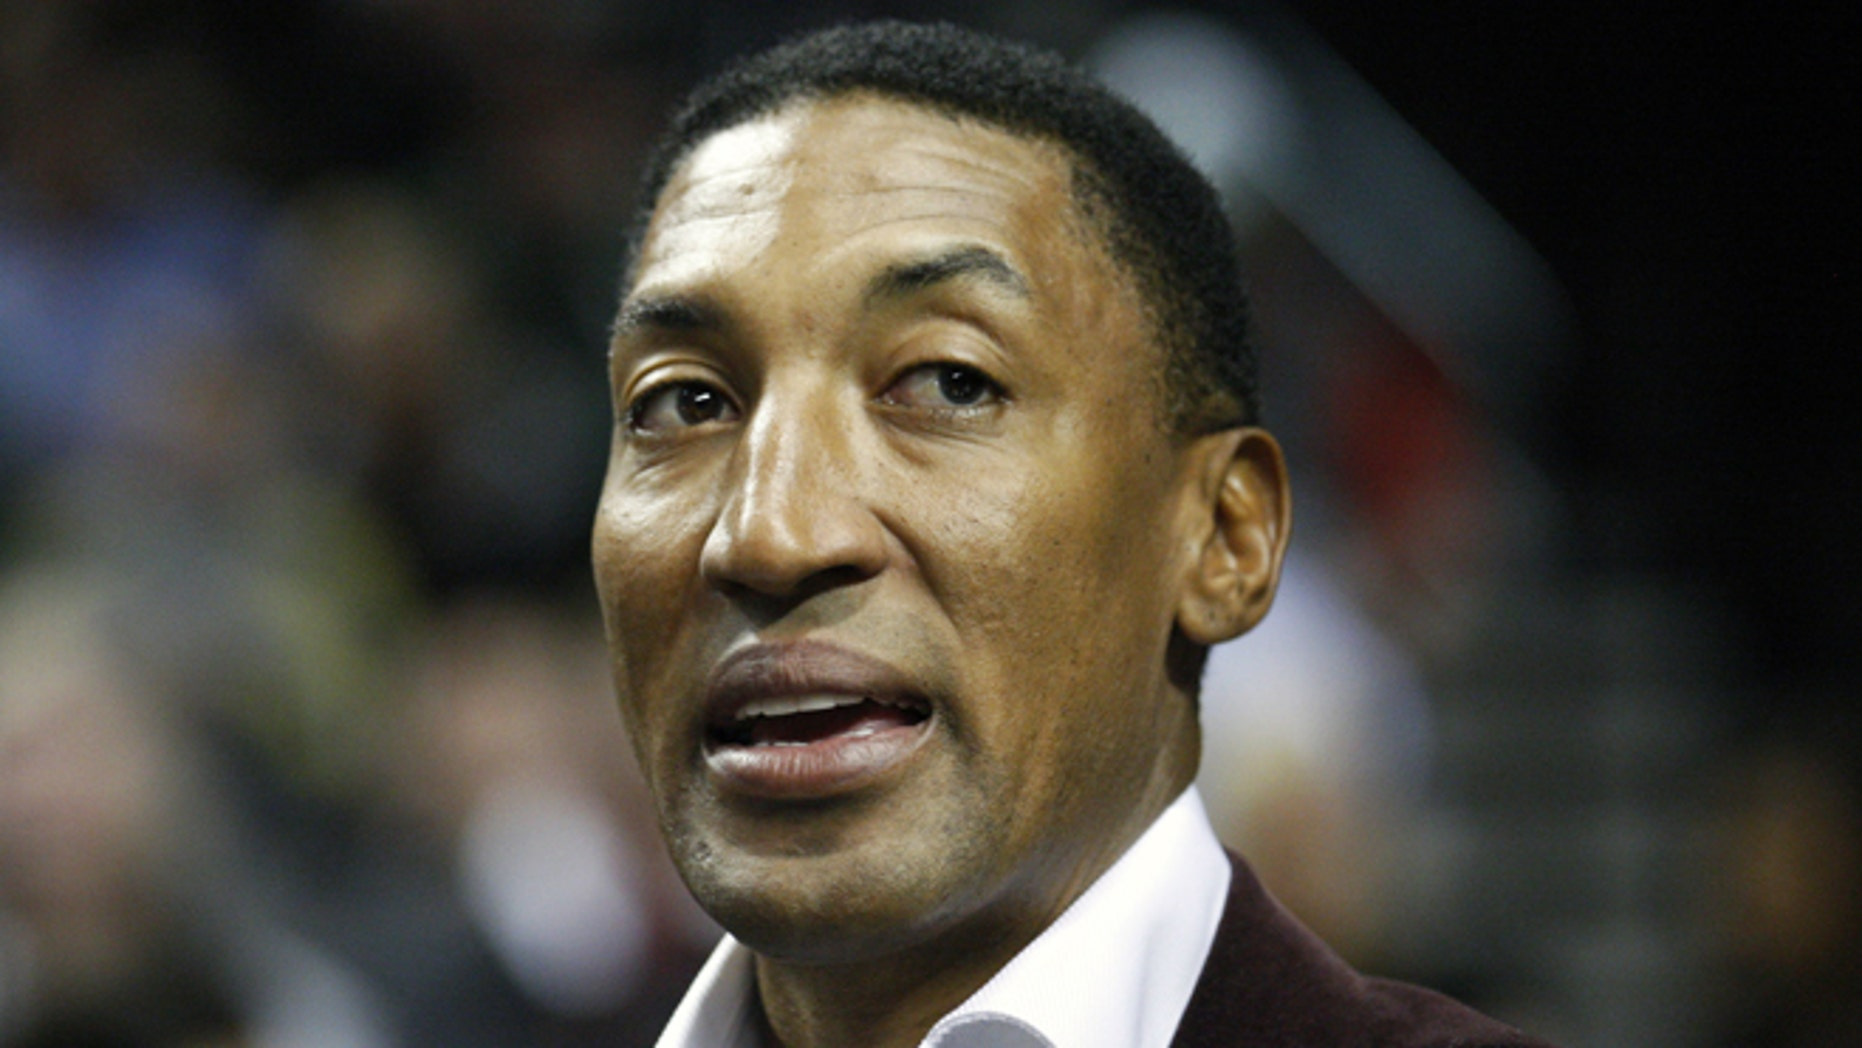 March 1, 2012: This file photo shows former NBA player Scottie Pippen during an NBA basketball game in Portland, Ore.